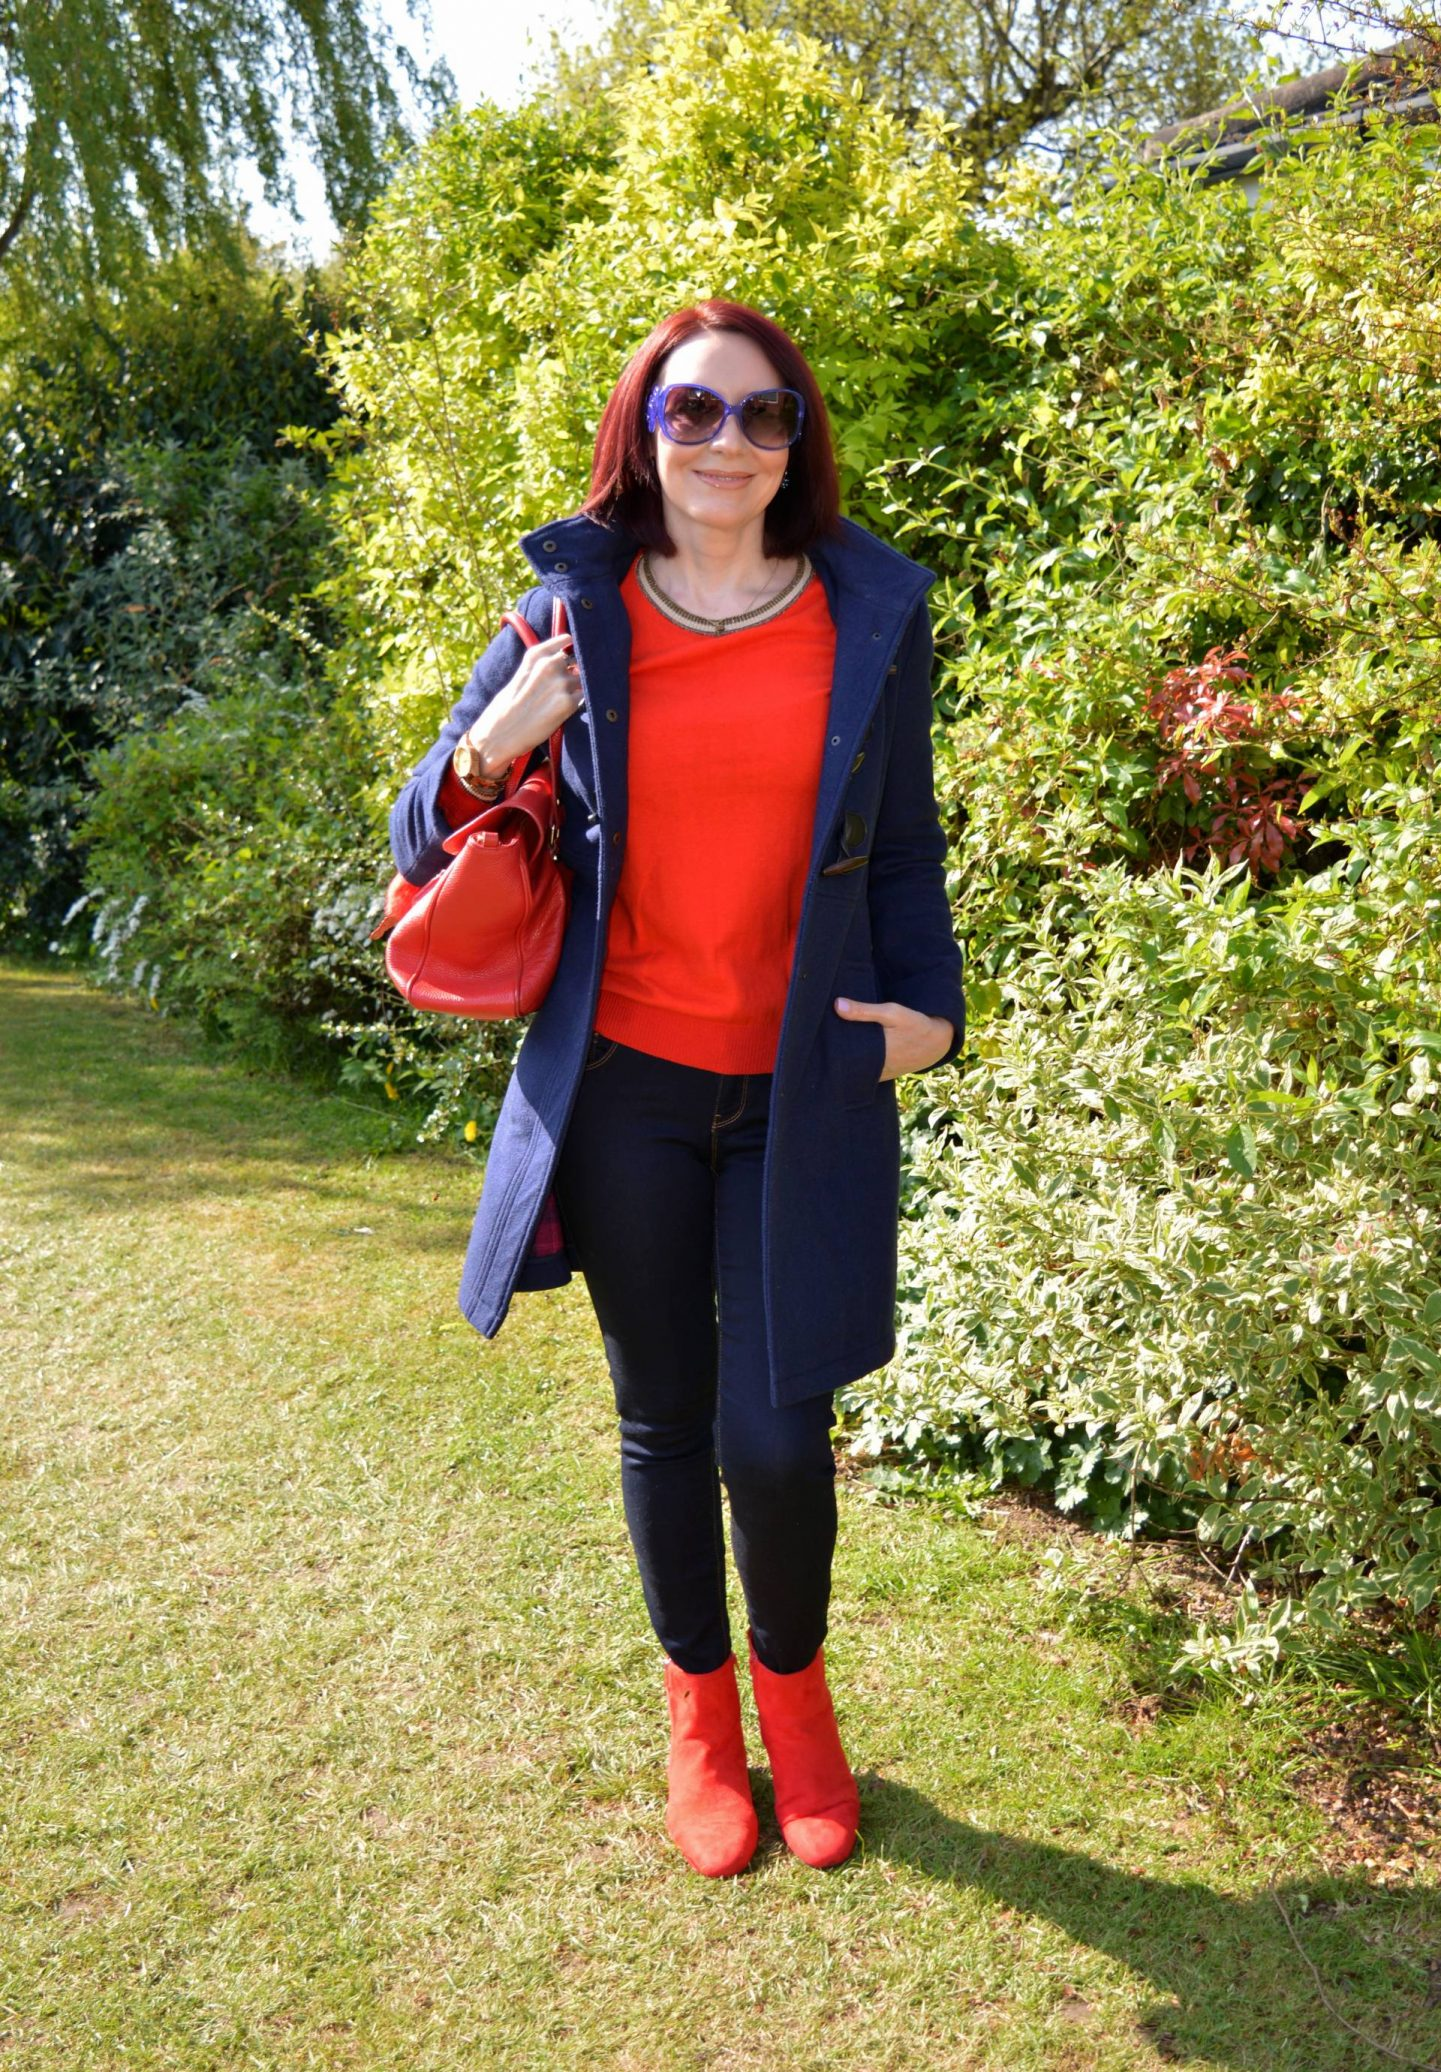 Navy and Bright Red - A Casual Outfit For Work, Scotch & Soda red jumper